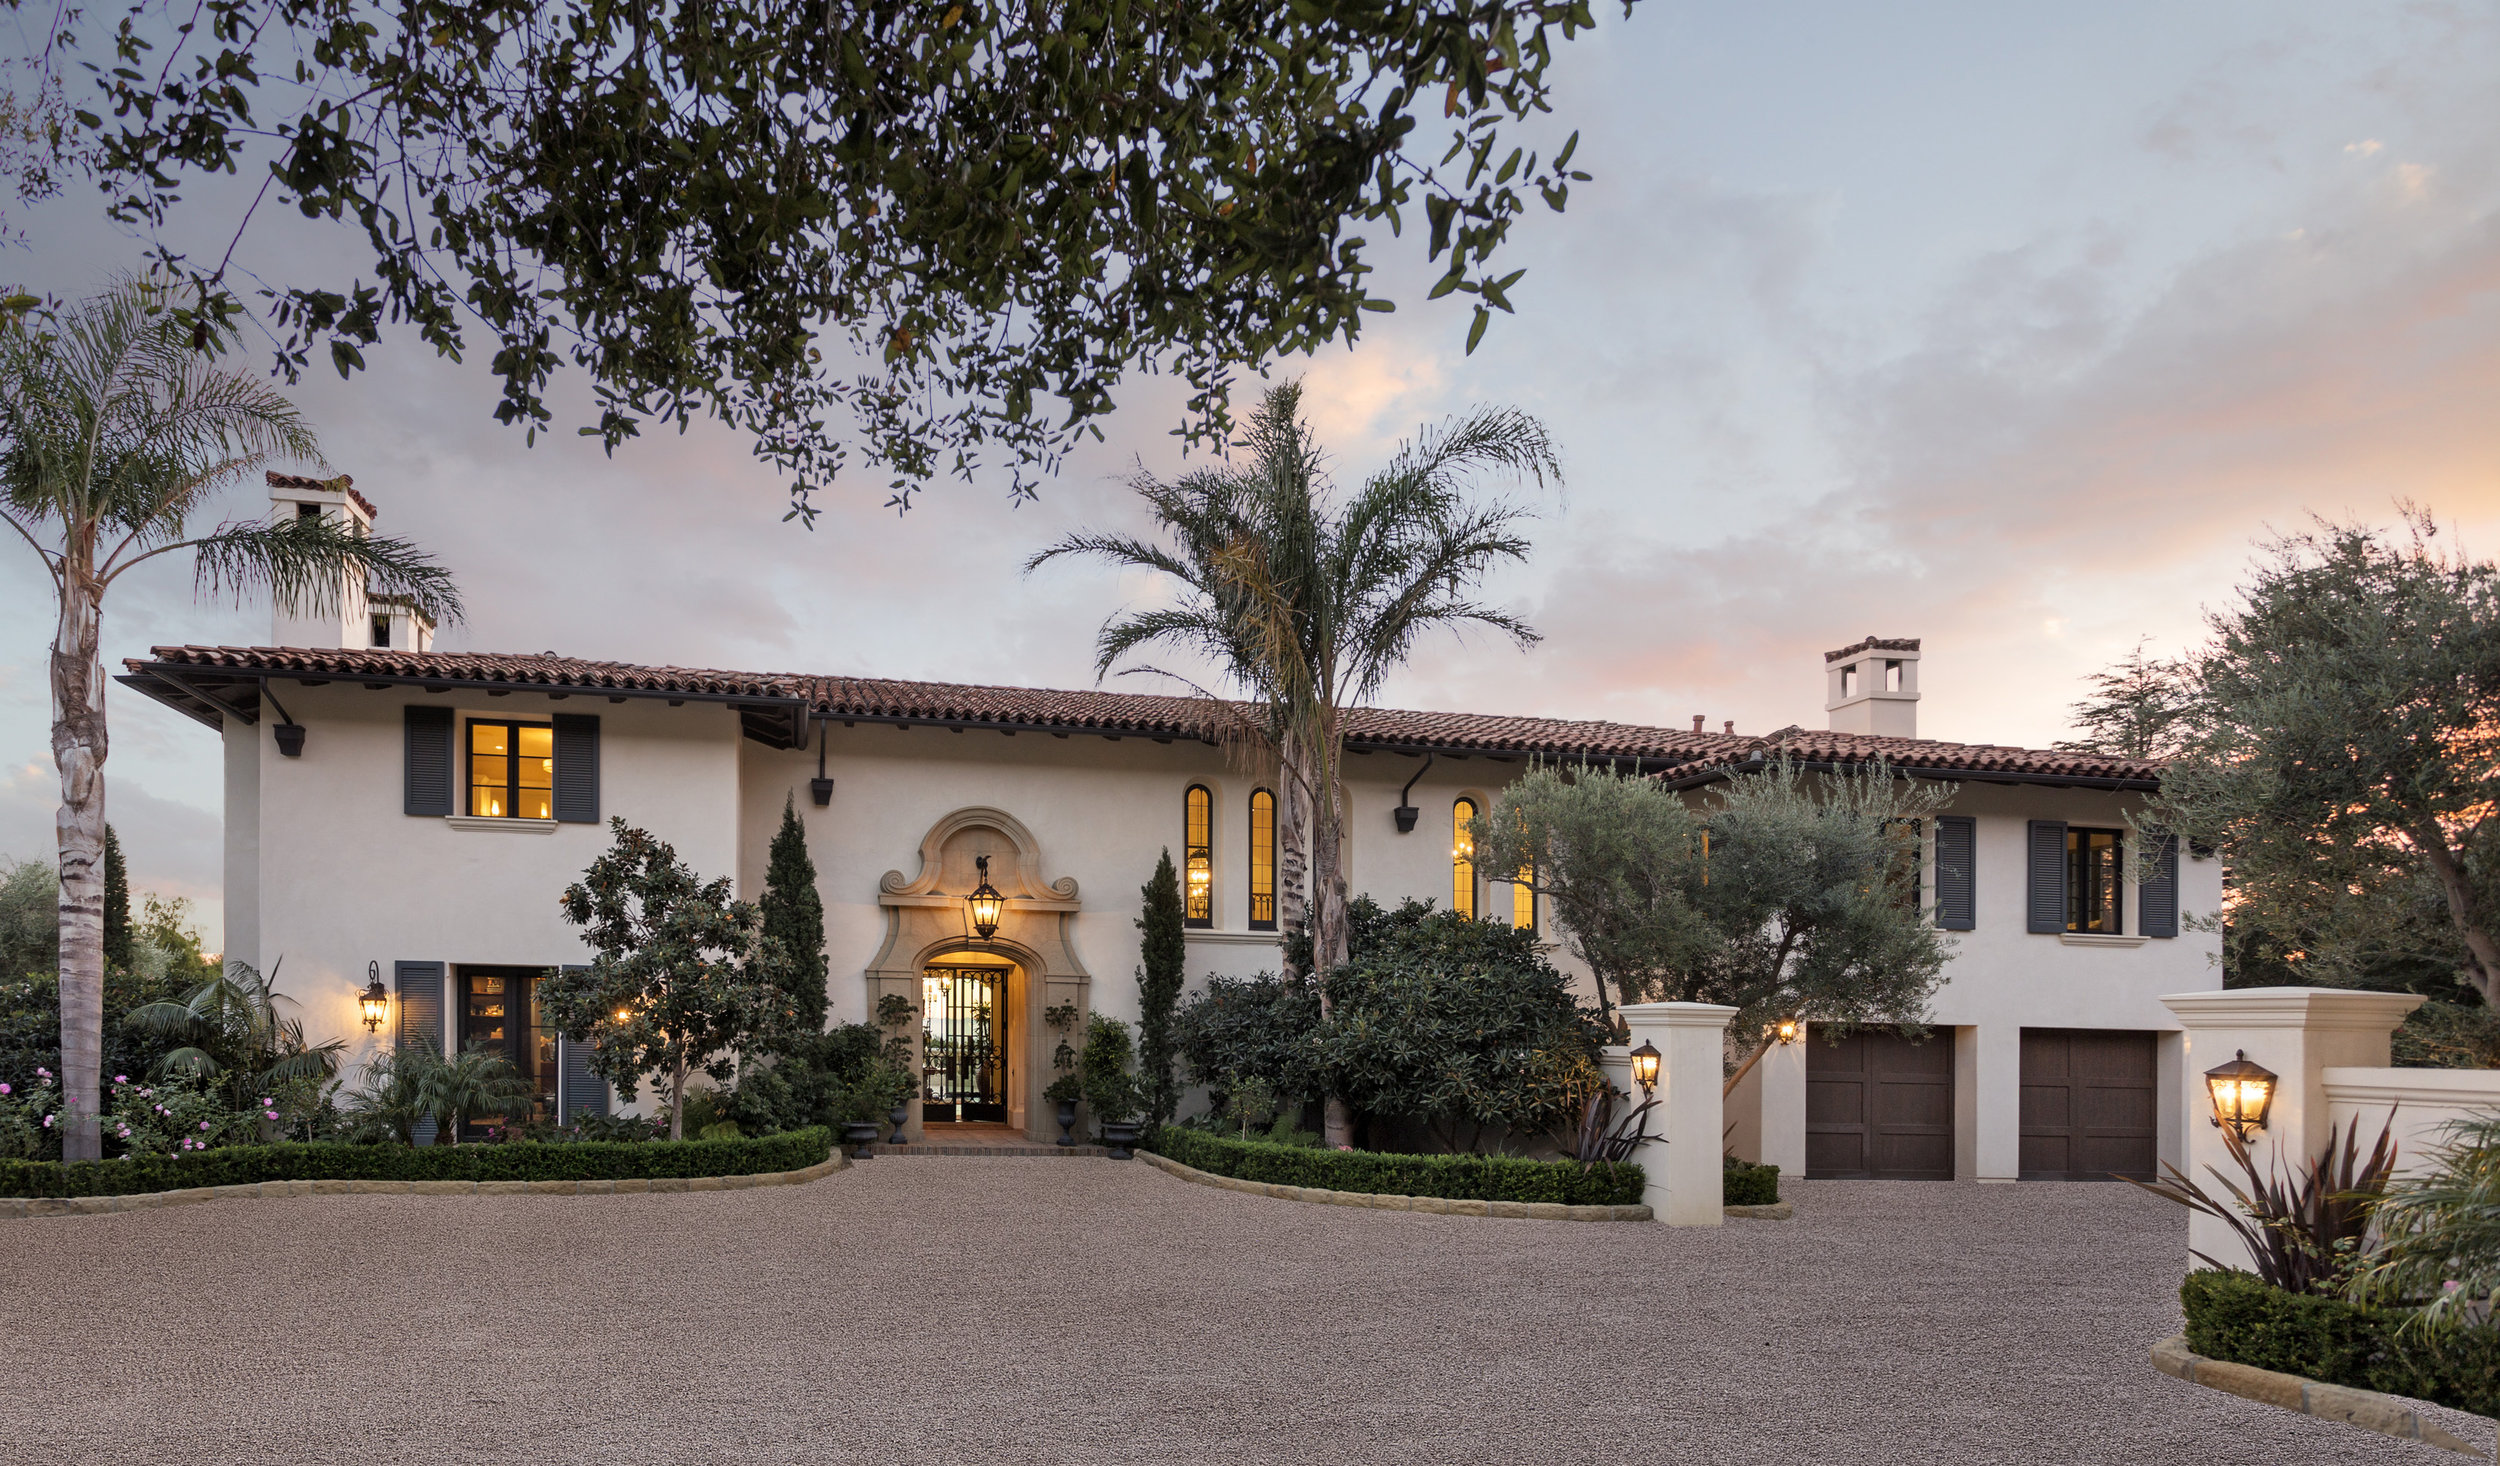 Property for Sale: 1475 East Mountain Drive, Montecito, CA 93108 List Price: $14,900,000 5 Beds, 6 Full Baths, 3 Half Baths 11,740 Sq Ft Montecito View Estate!